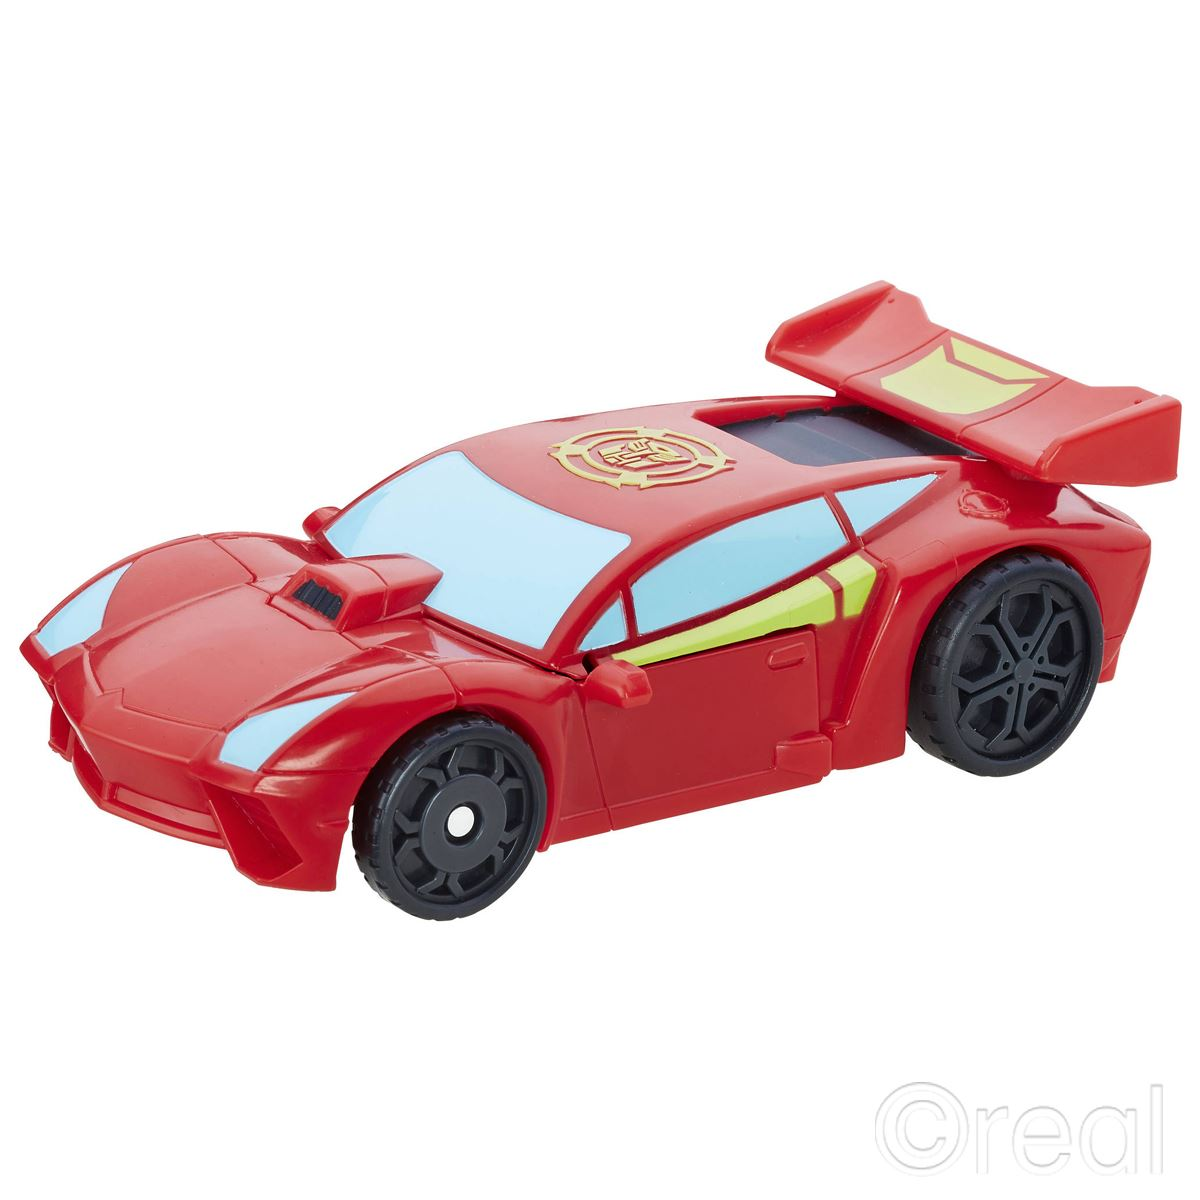 New Transformers Rescue Bots Sideswipe/Bumblebee Pull Back